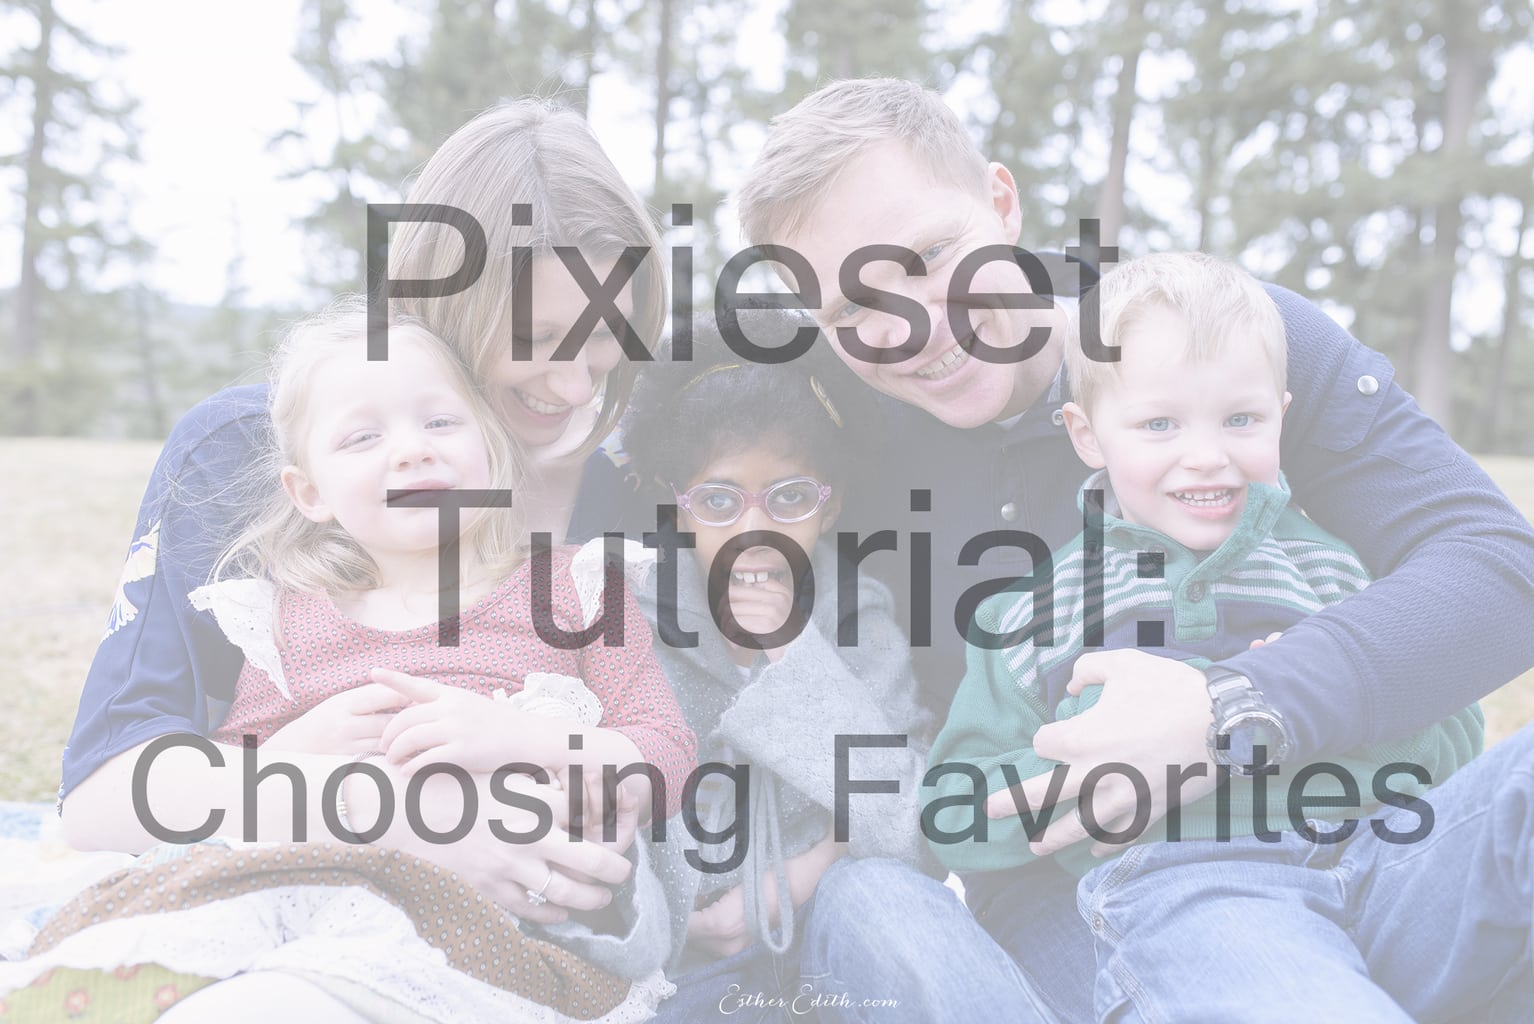 How To Choose Your Favorites In A Pixieset Gallery E S T